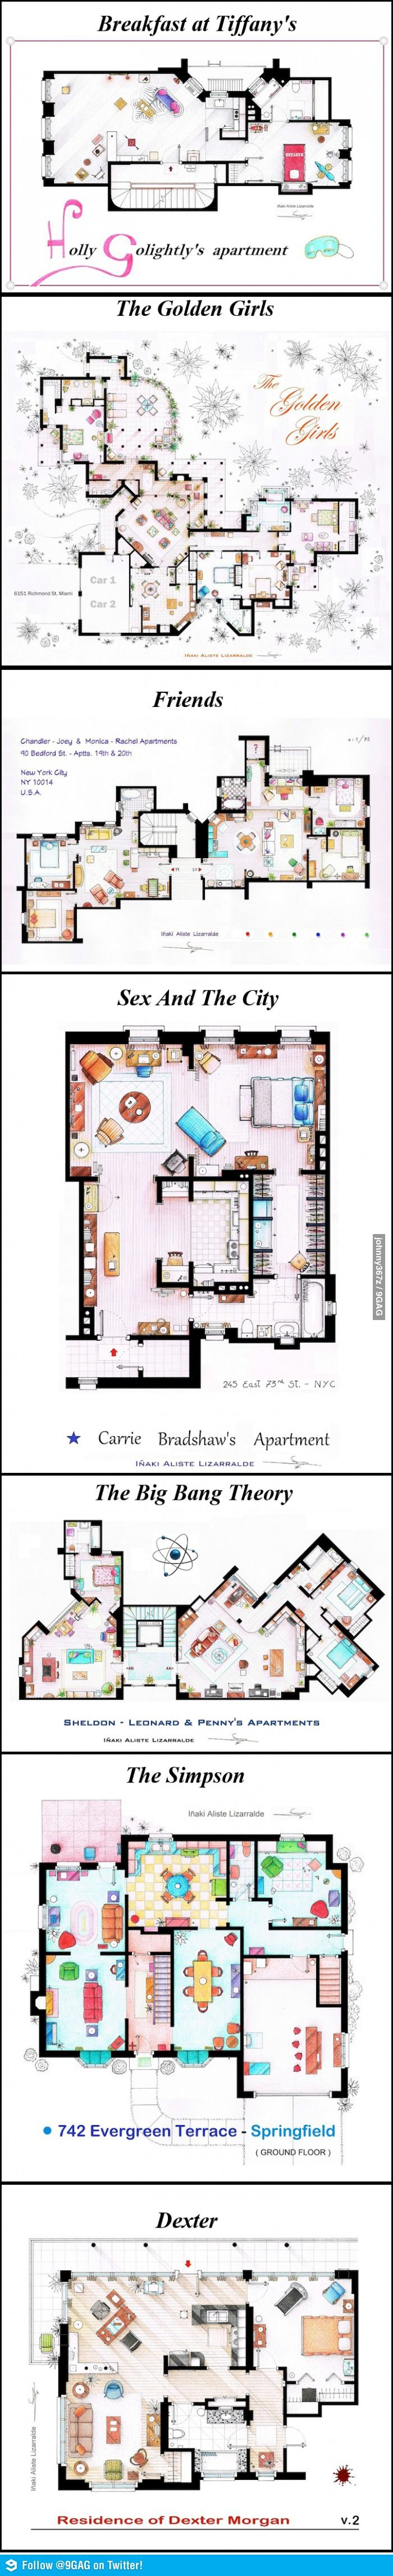 Floor plans of popular TV and film homes.